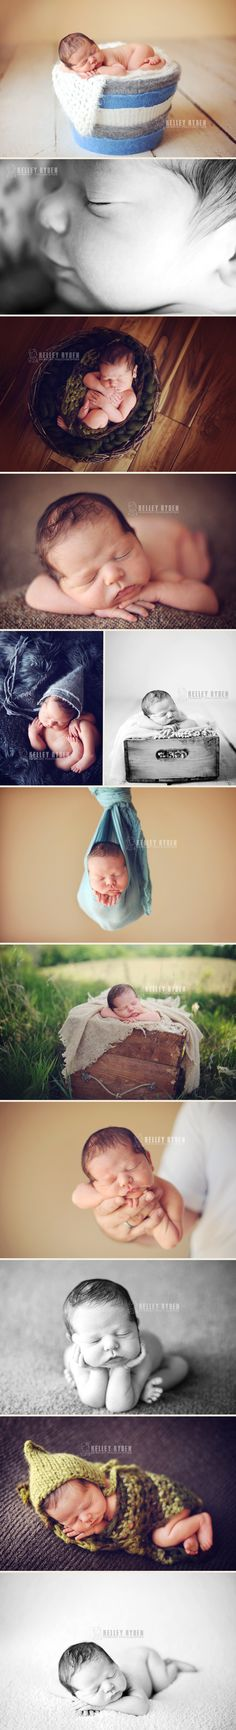 Kelley Ryden #newborn